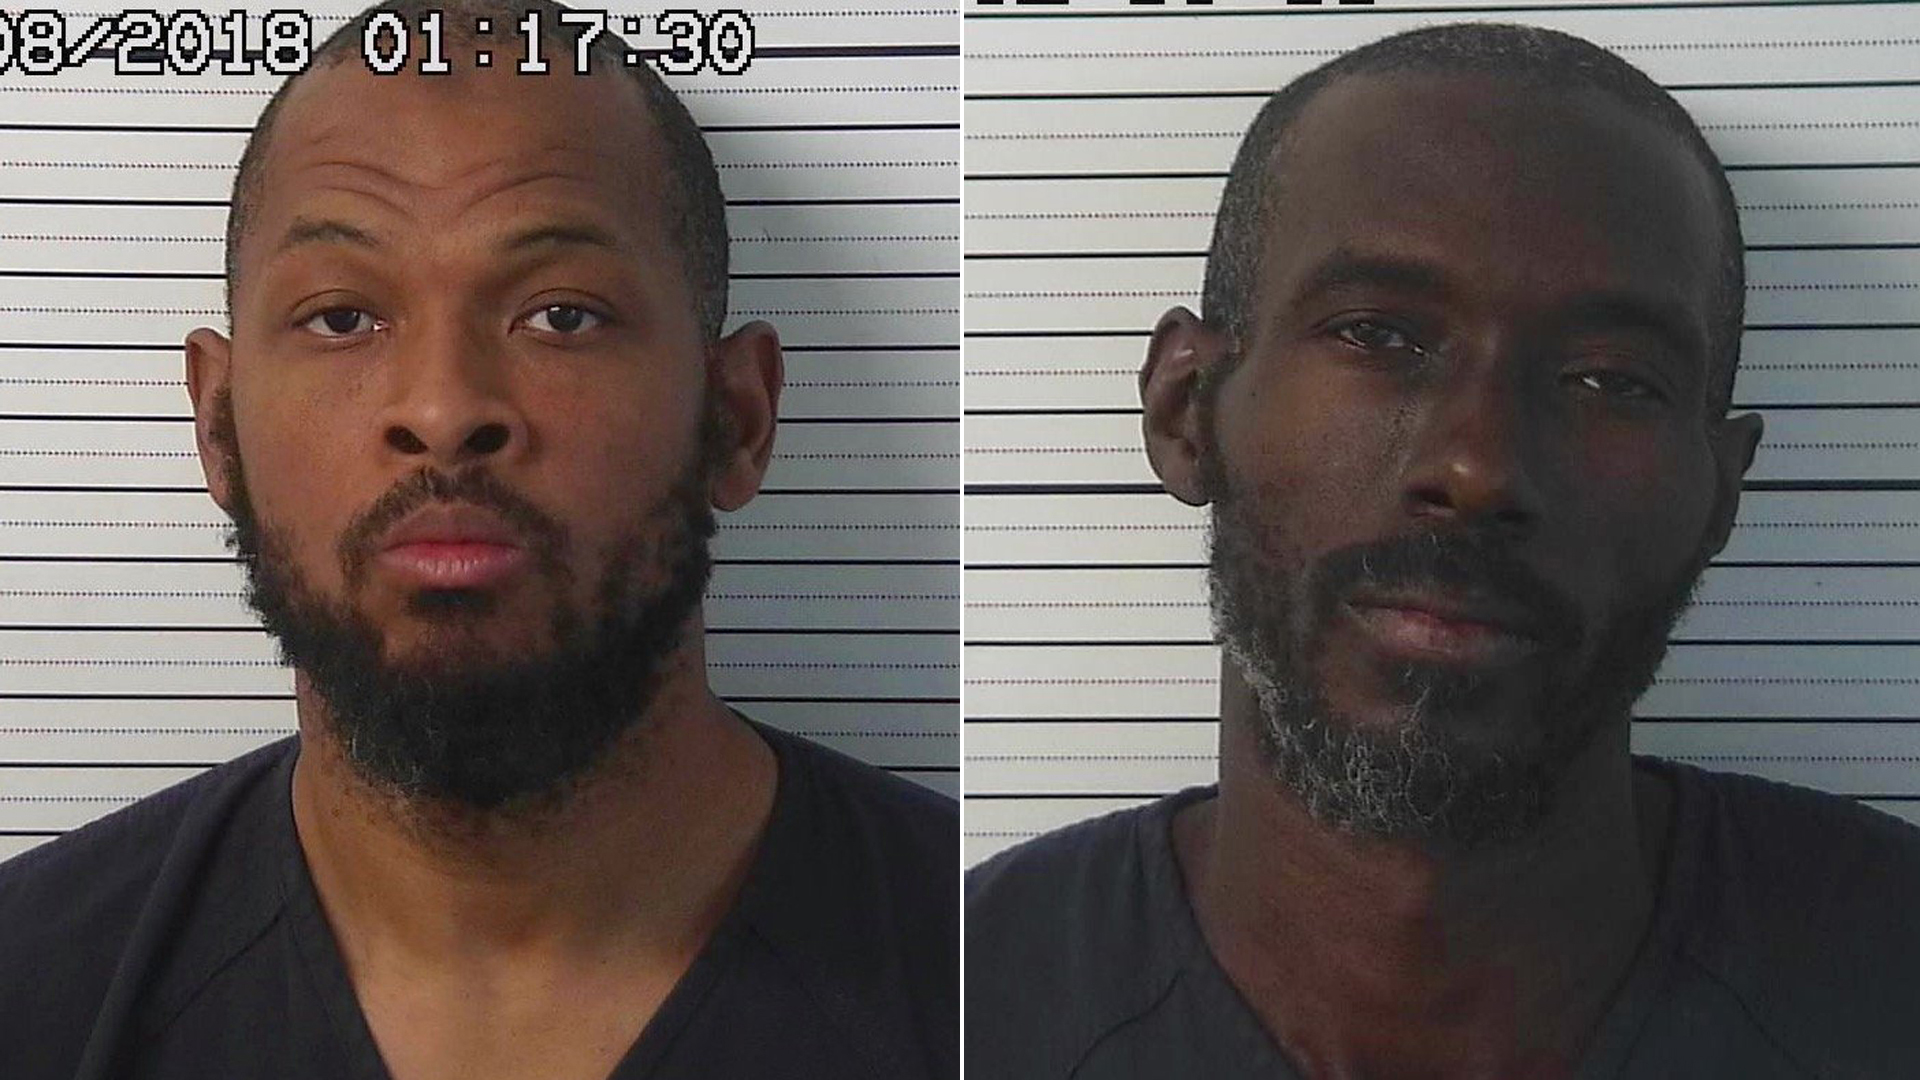 The Taos County Sheriff's Office released these booking photos of Siraj Wahhaj, left, and Lucas Morten, right.